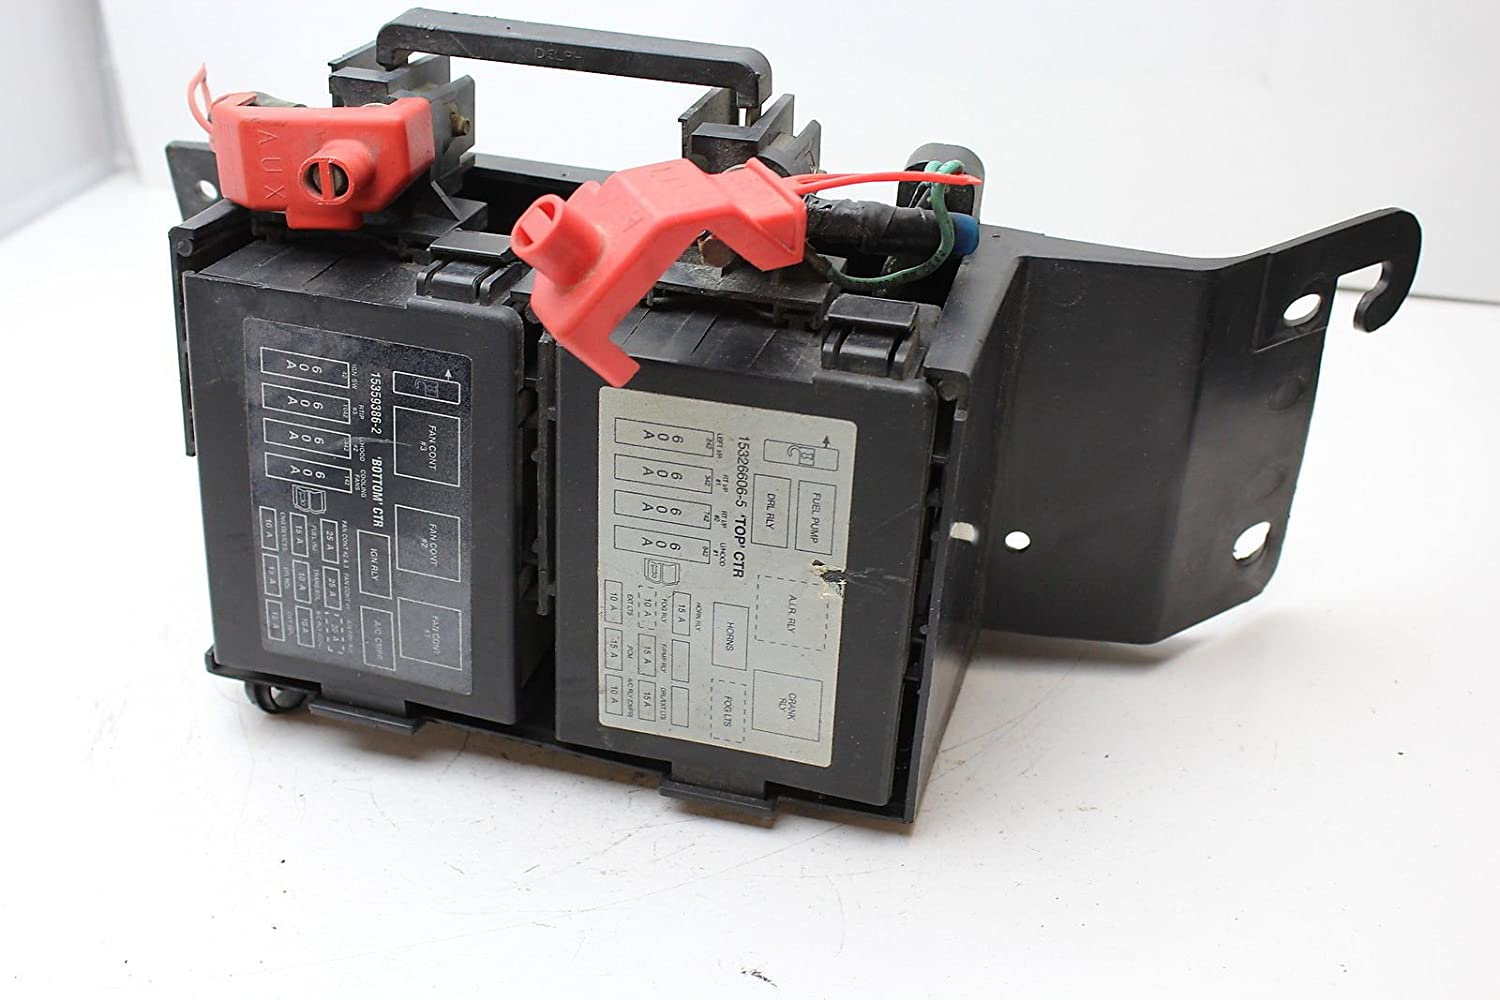 Chevy Cavalier Fuse Box Diagram On 2000 Impala Stereo Wiring Diagram